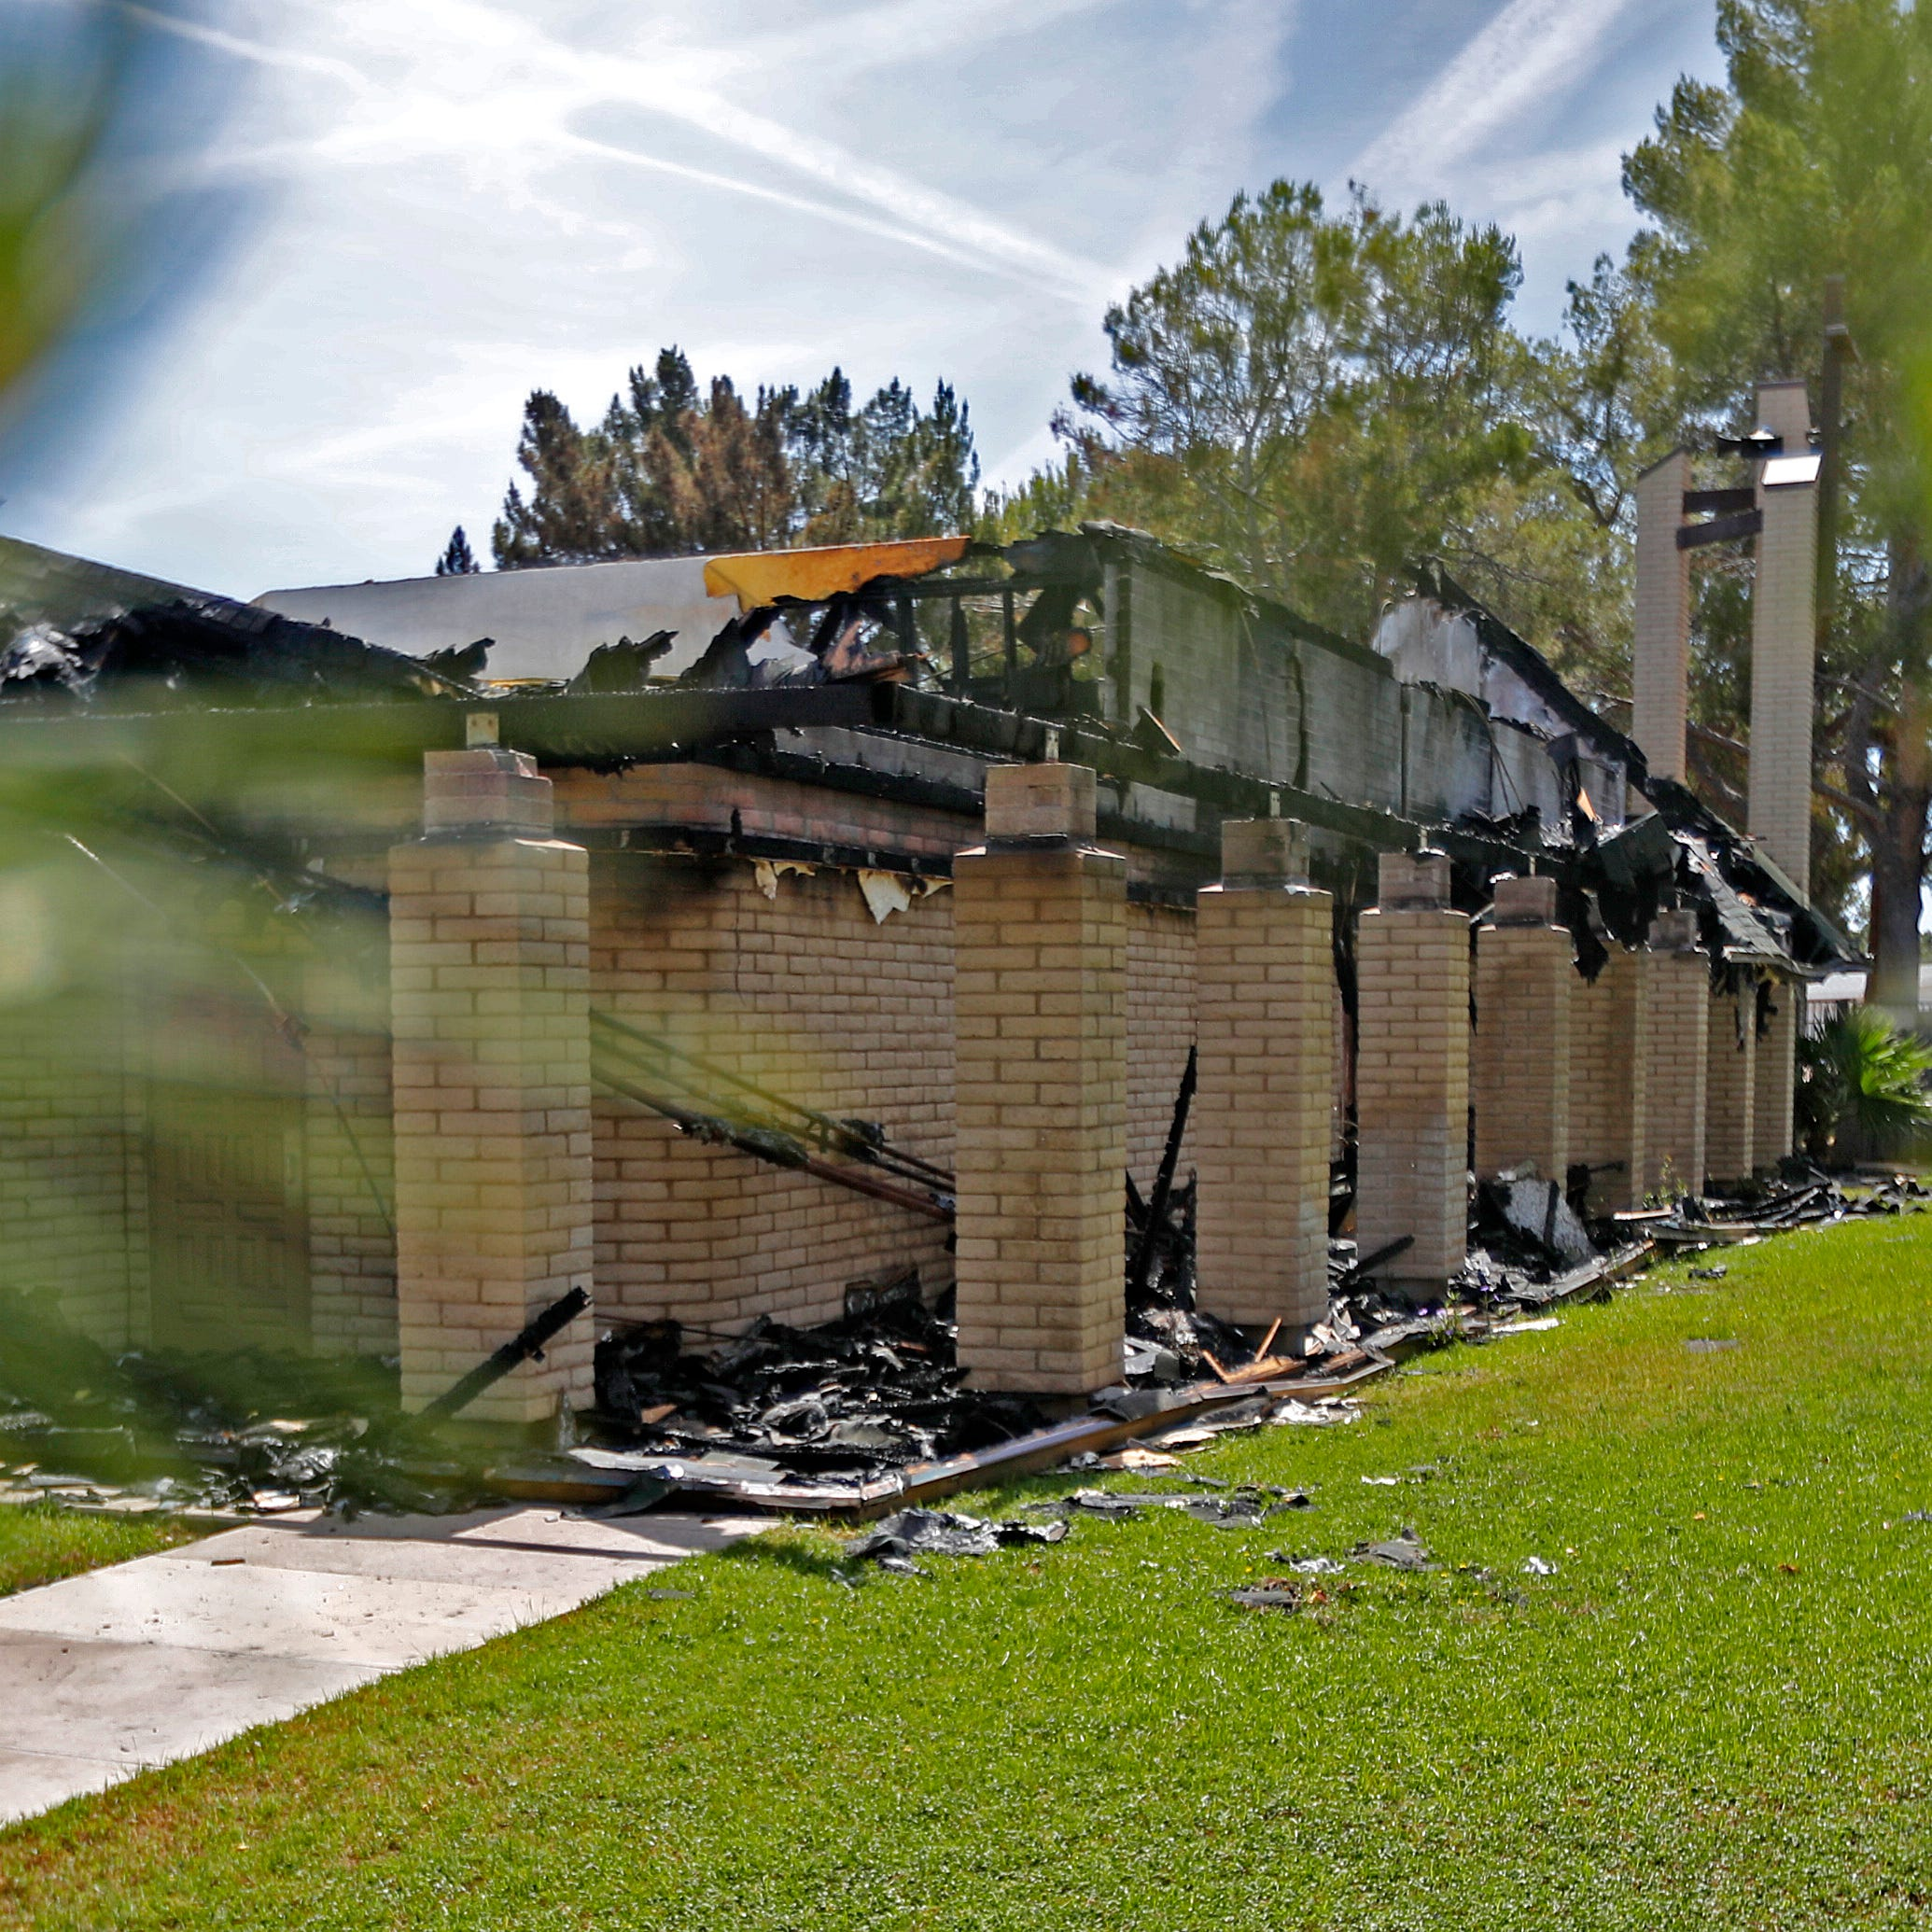 St. Joseph Catholic Church fire appears accidental, but investigation ongoing, Phoenix fire officials say